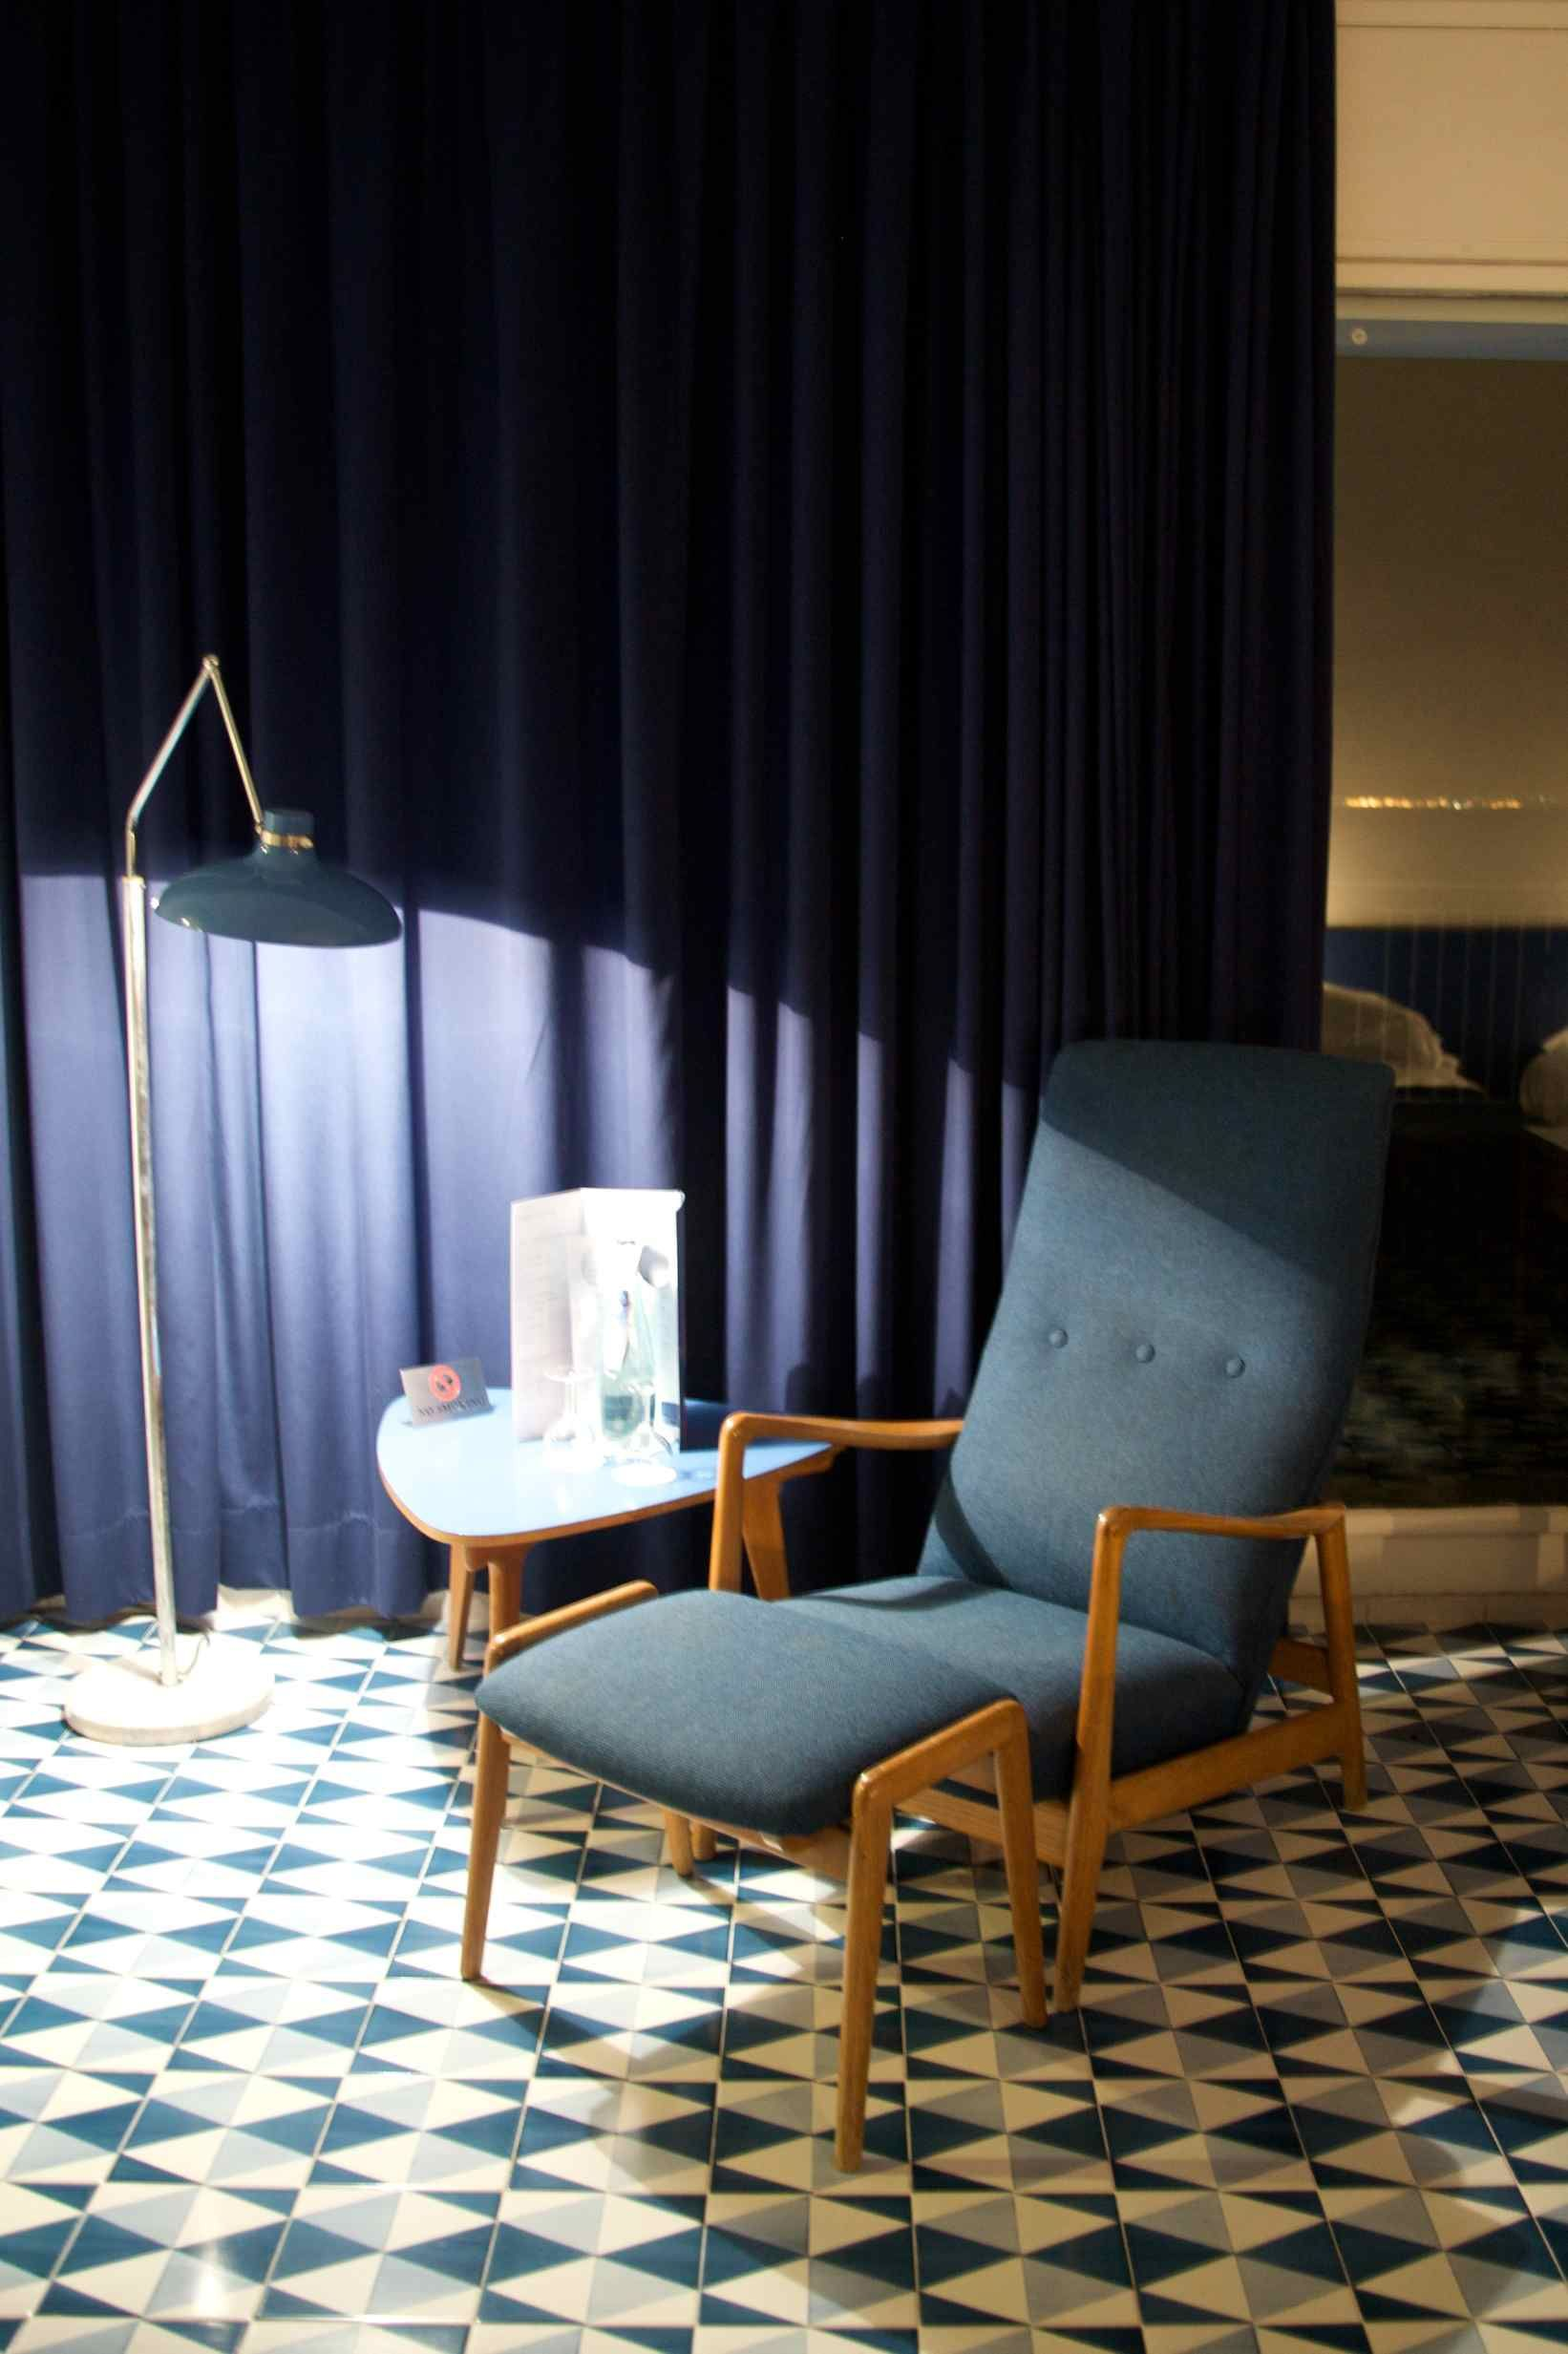 Inside The Room There Is A Great Reading Chair And Light At The Parco Dei  Principe